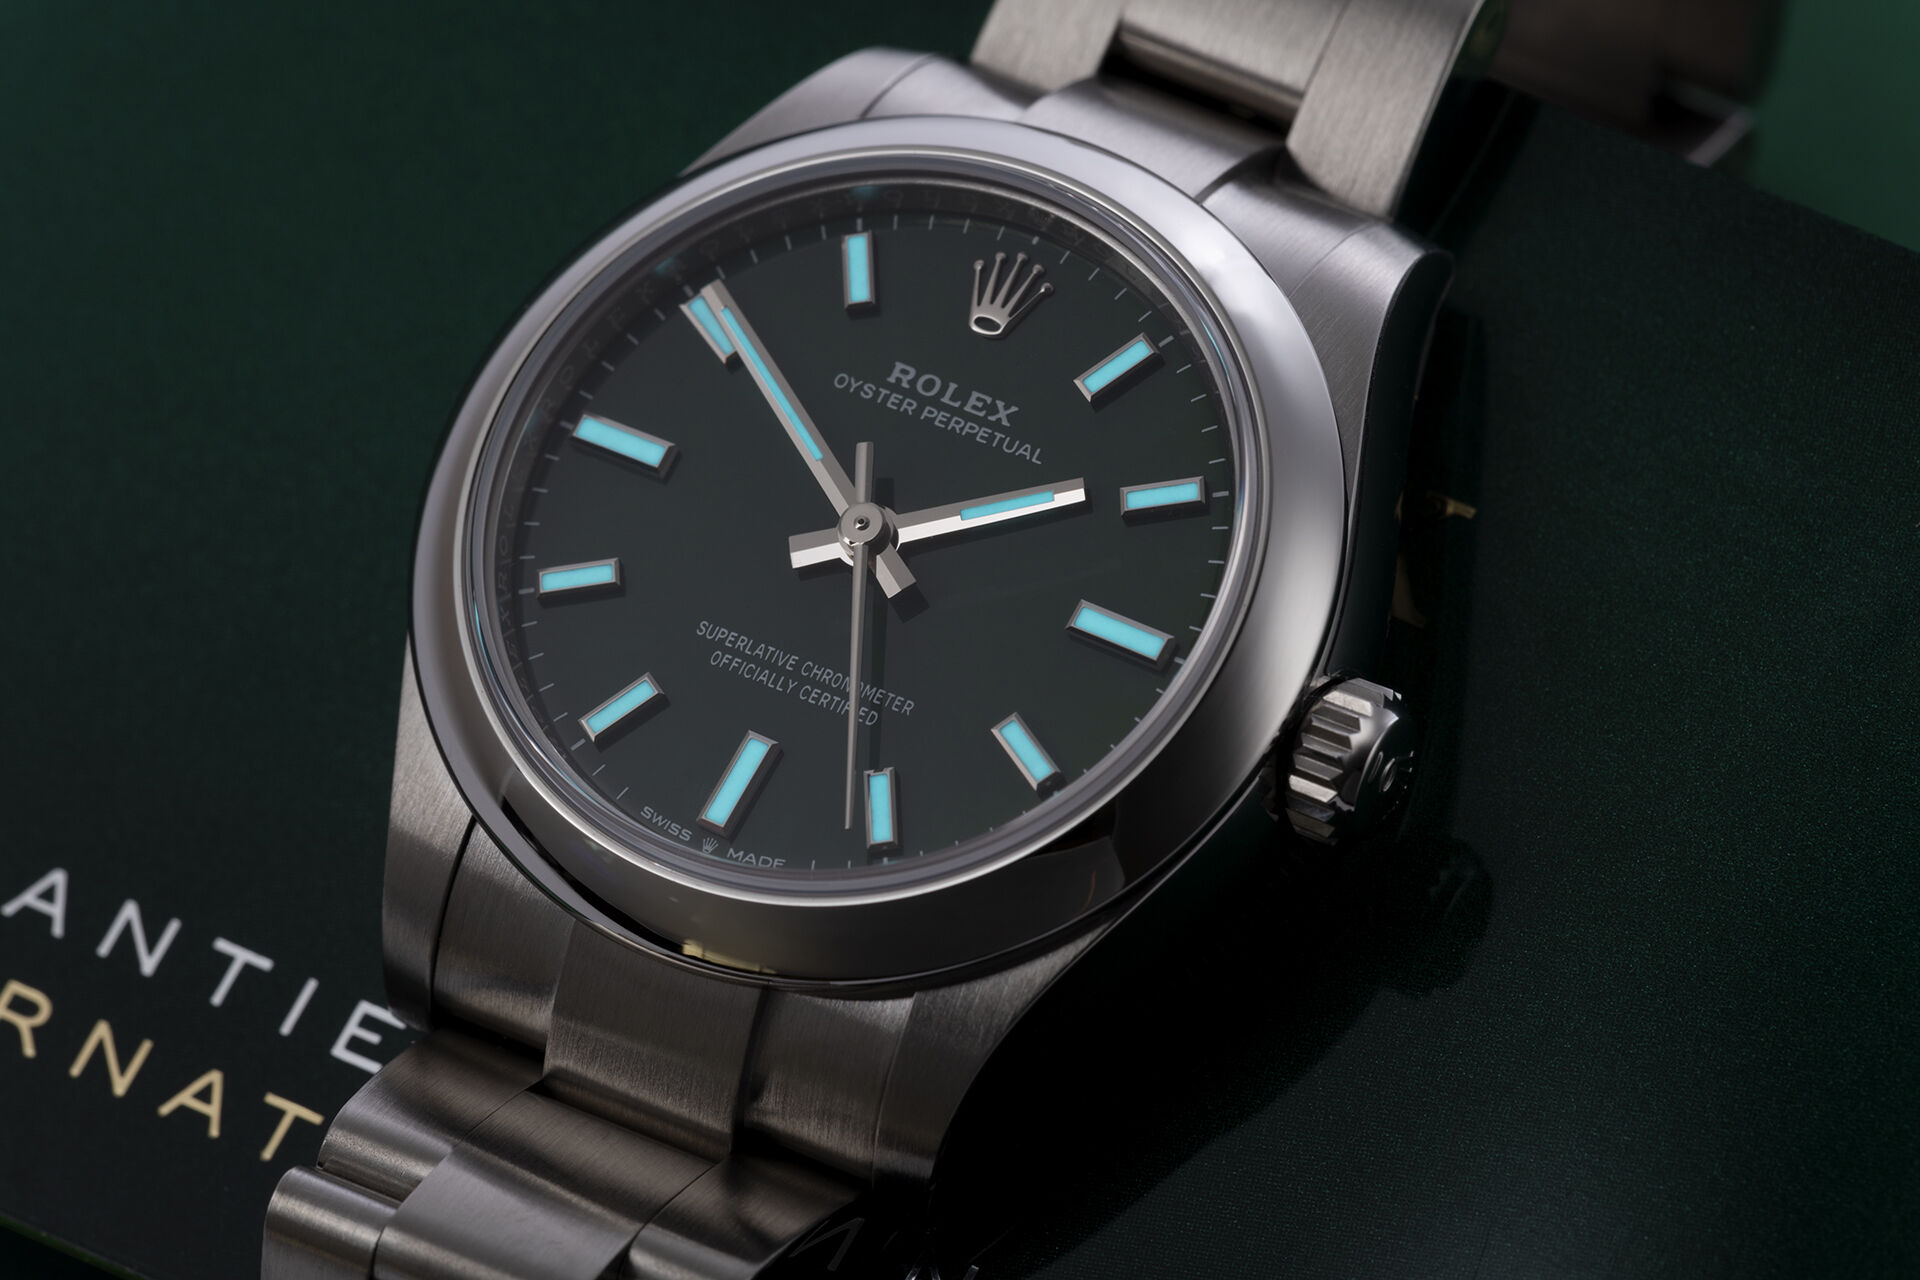 ref 277200 | Latest Release - Green Dial | Rolex Oyster Perpetual